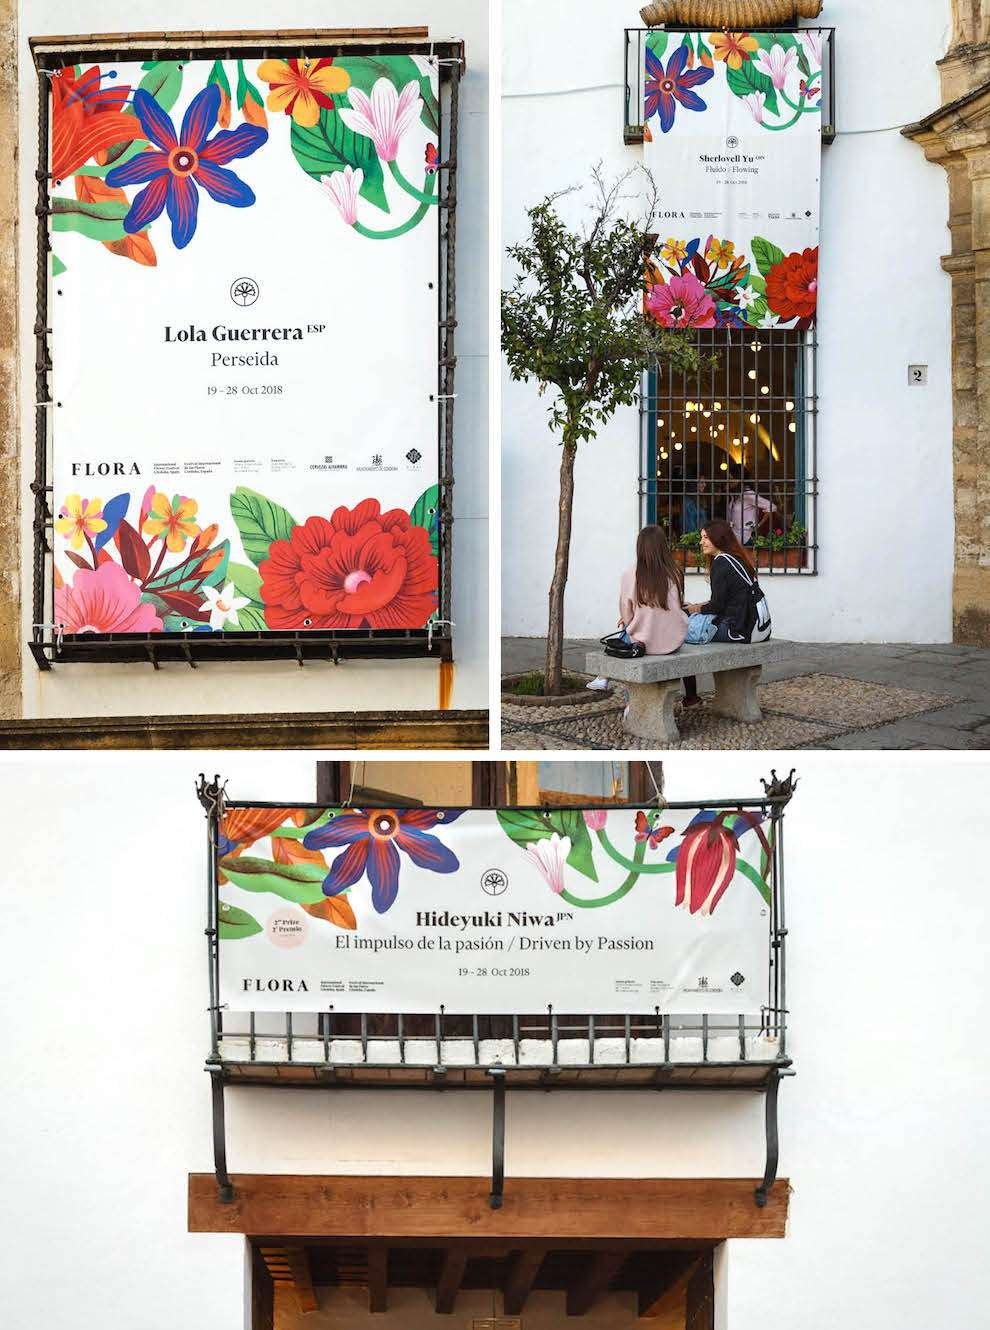 Tatiana Boyko, In situ photographs of botanical illustration used as branding for a floral festival